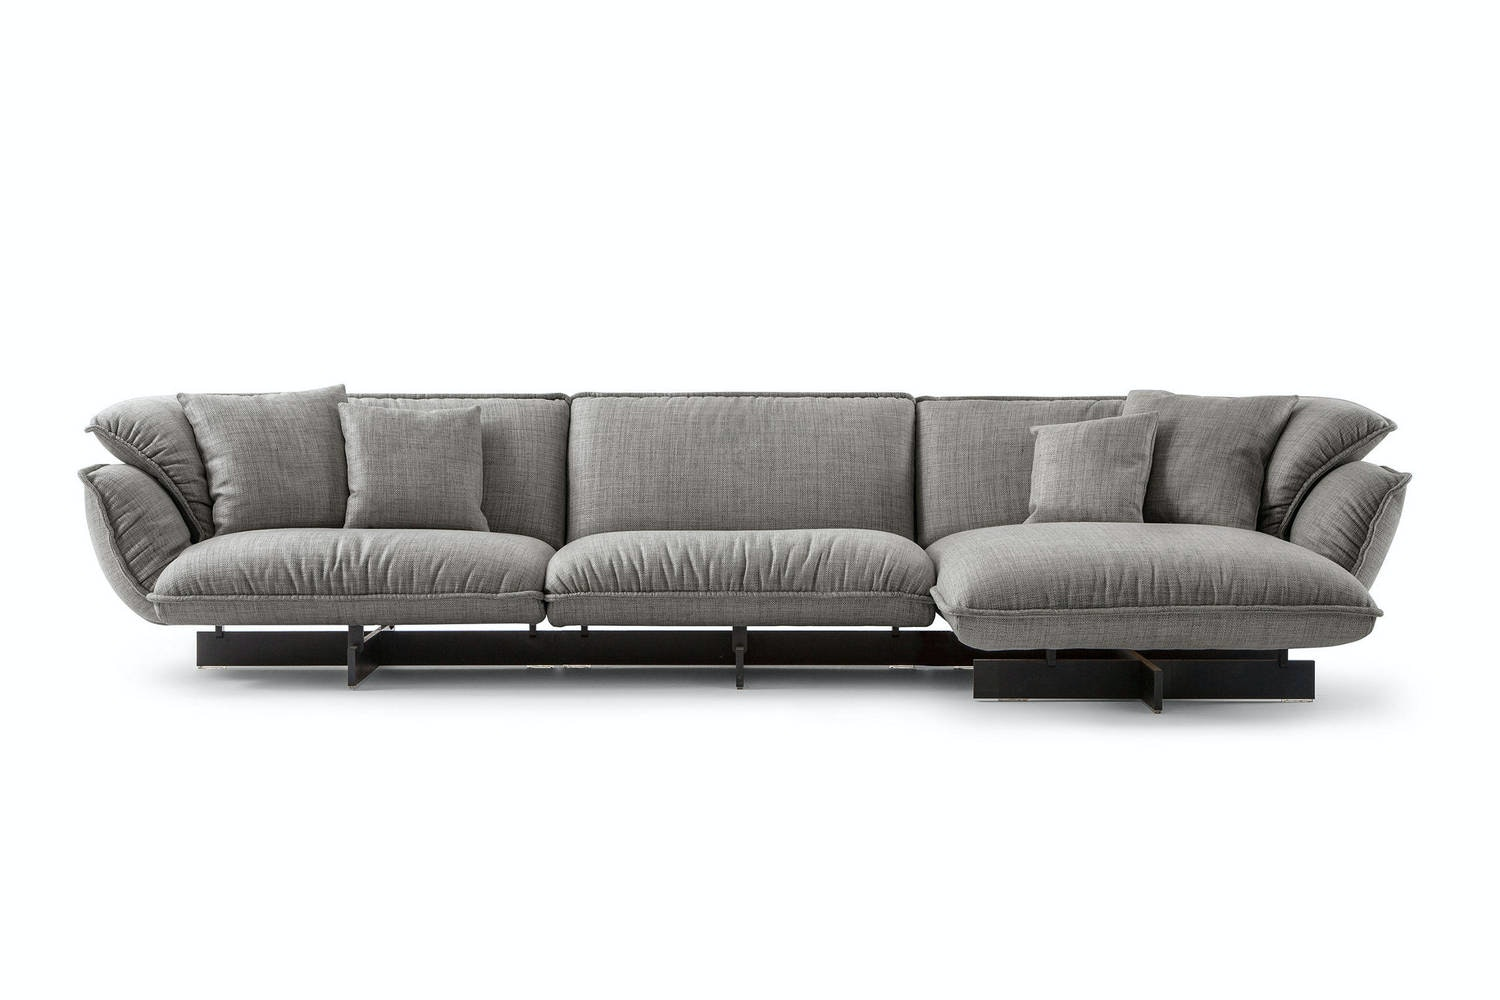 551 Super Beam Sofa System by Patricia Urquiola for Cassina